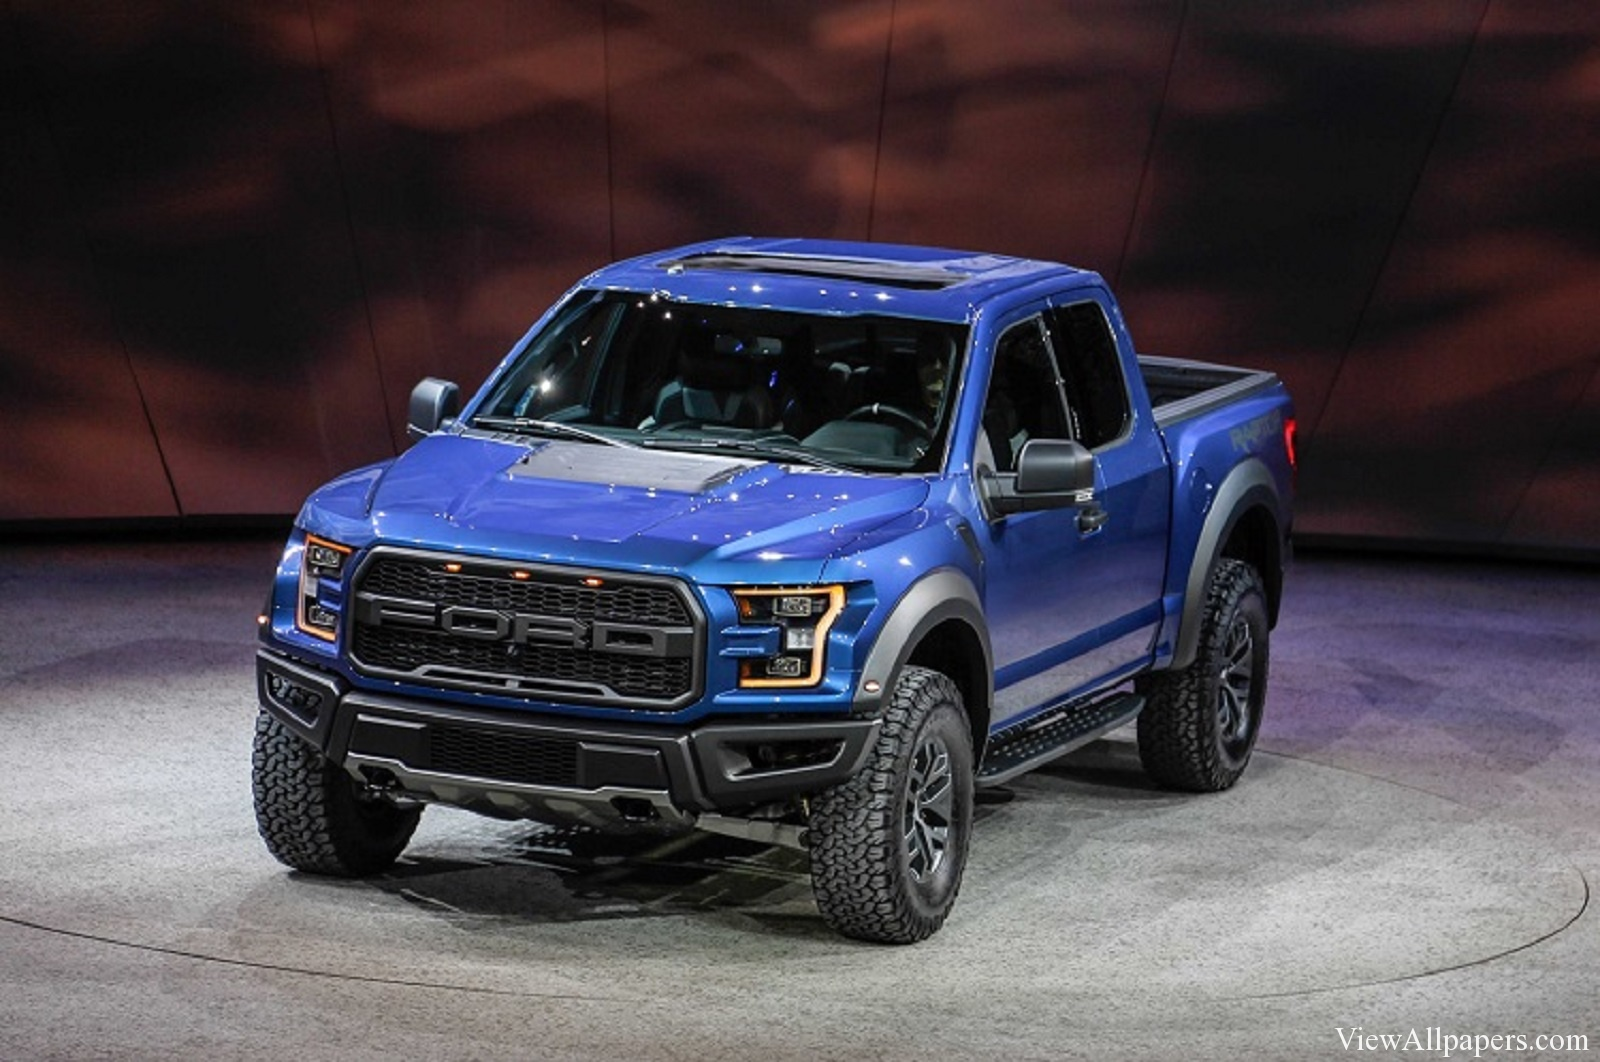 2017 Ford Raptor High Resolution Wallpaper download 2017 Ford 1600x1062